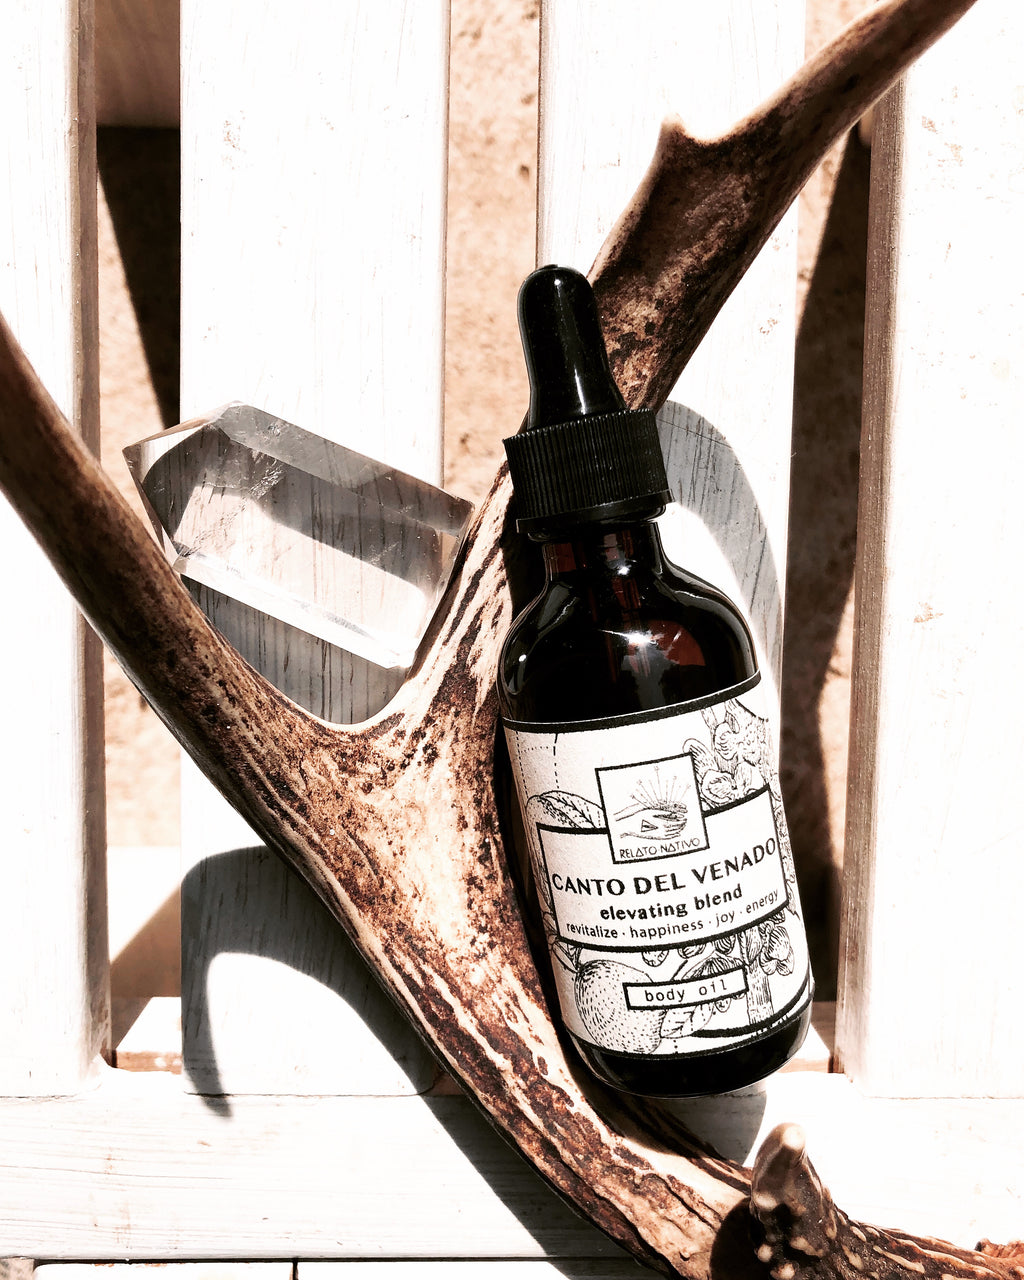 Body Oil CANTO DEL VENADO (Song of the Deer)